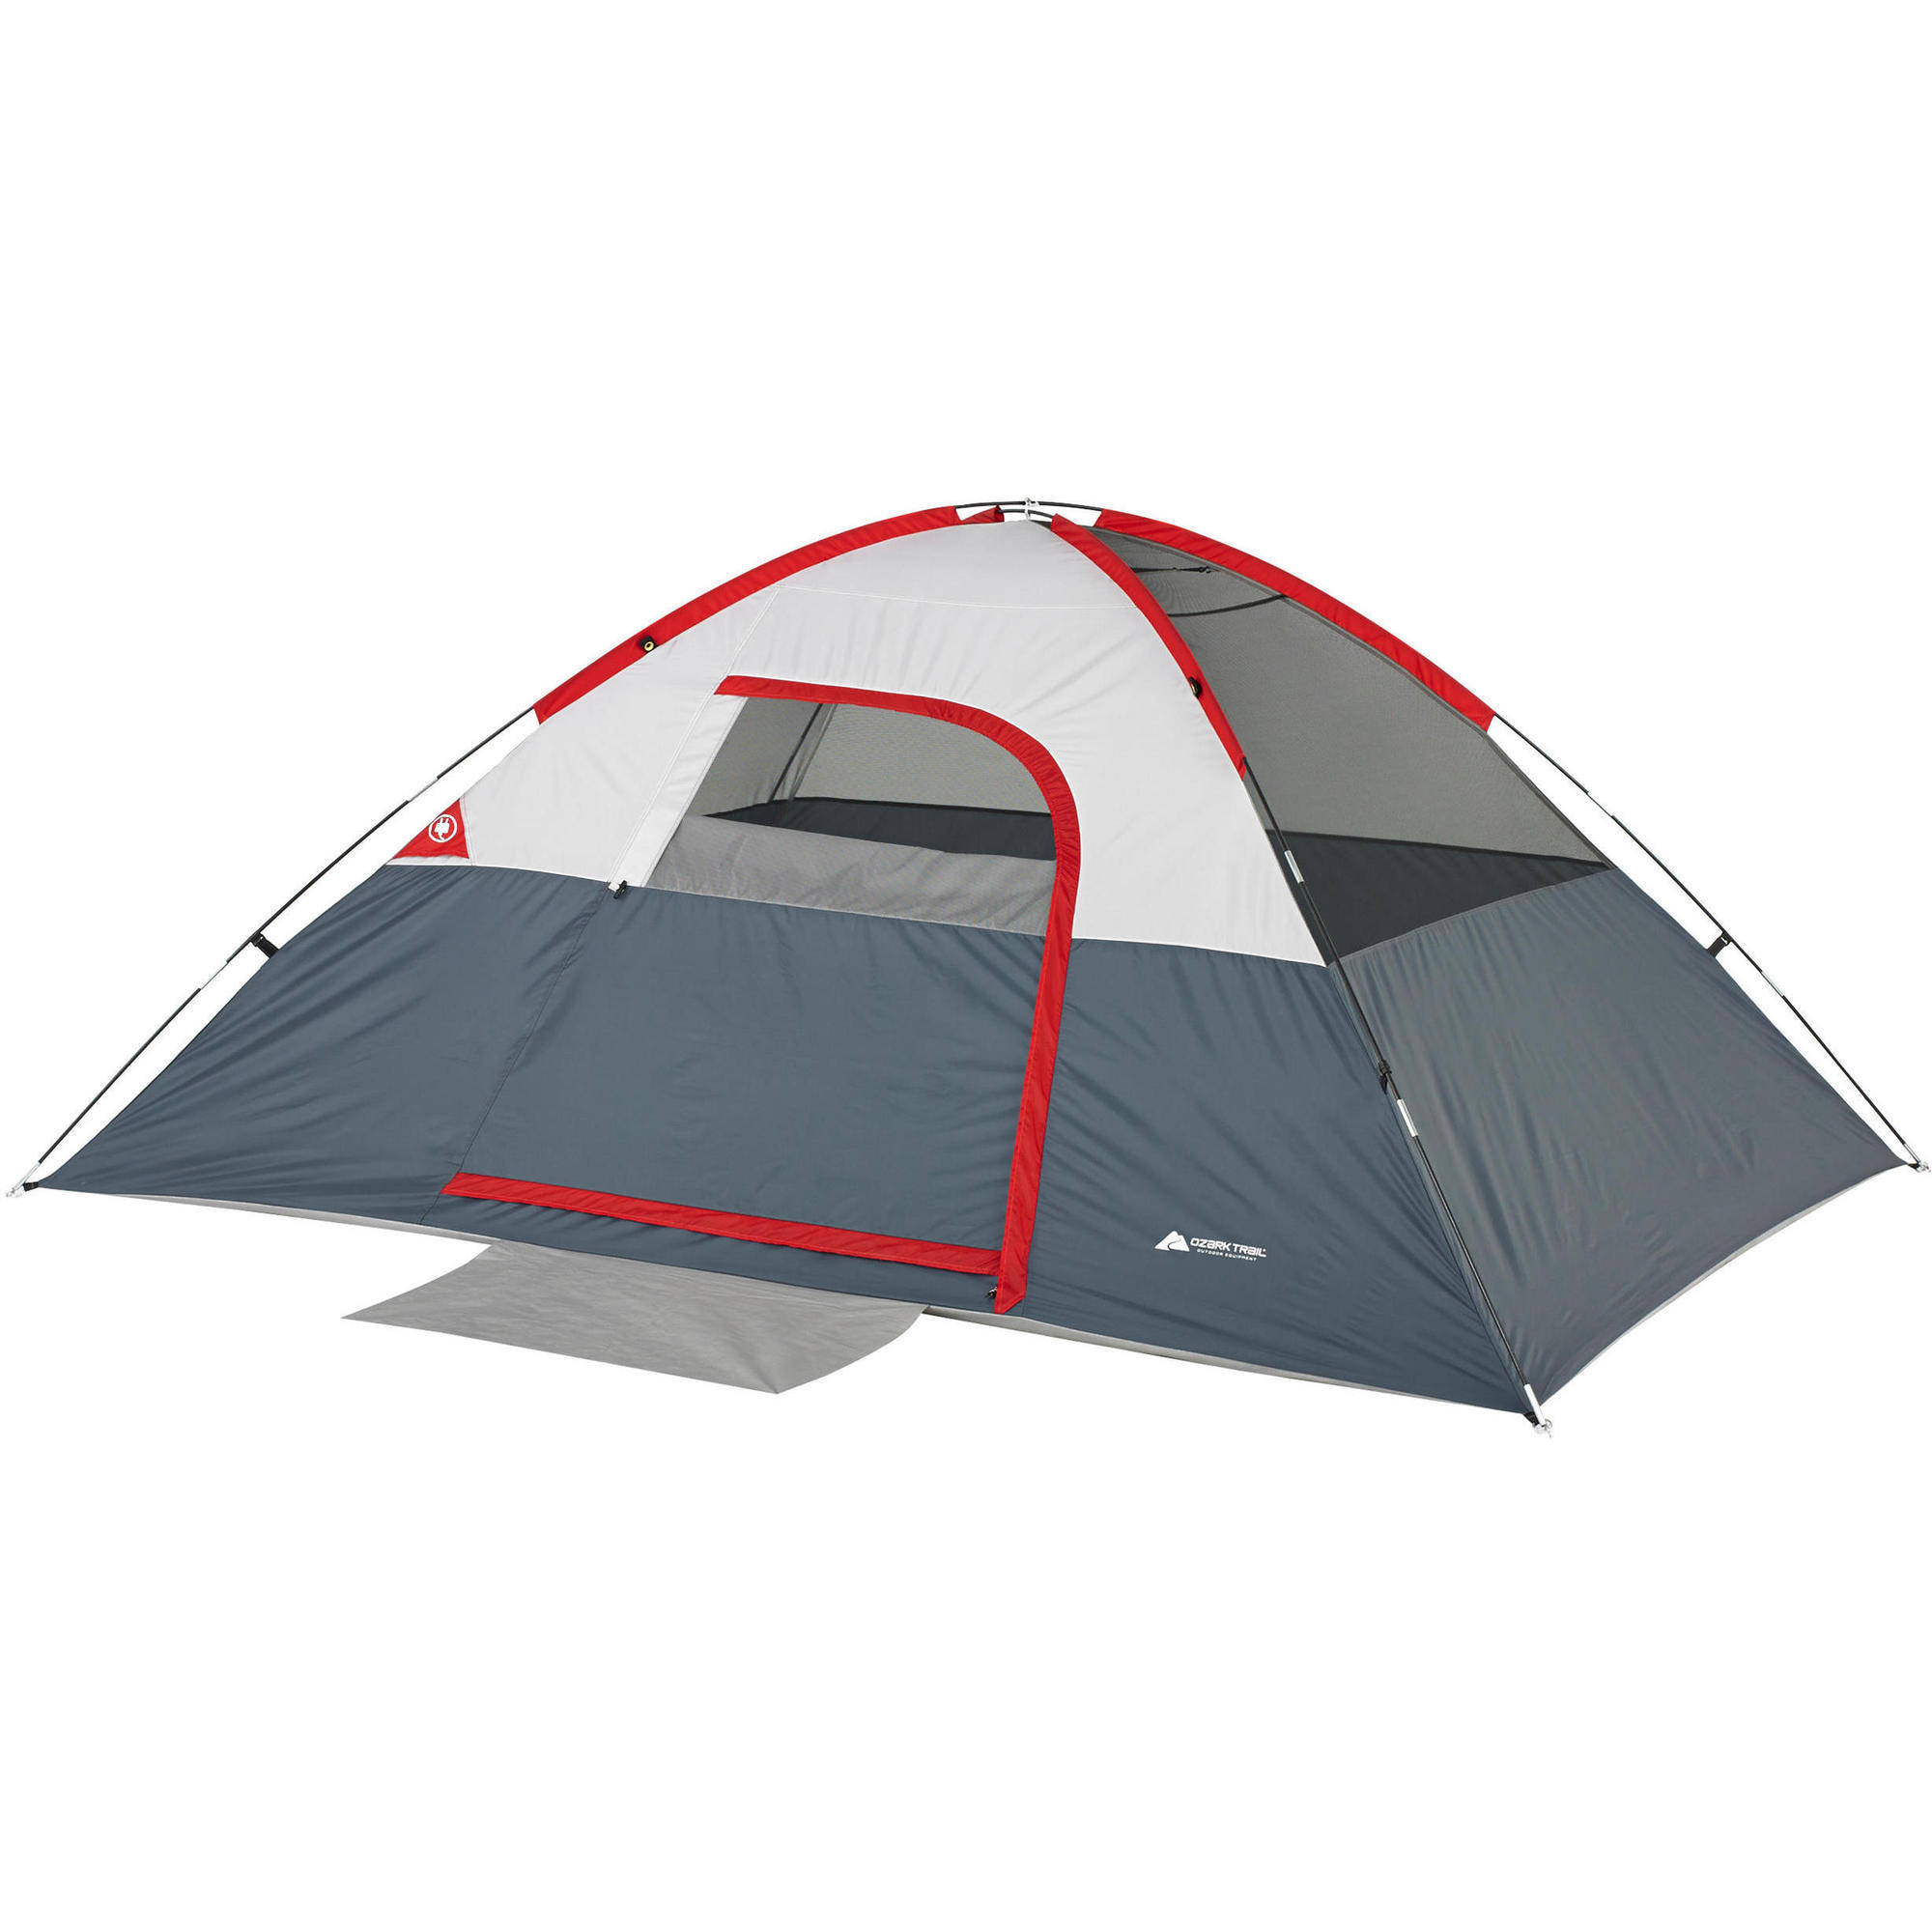 sc 1 st  Walmart & Ozark Trail 4-Person Dome Tent - Walmart.com